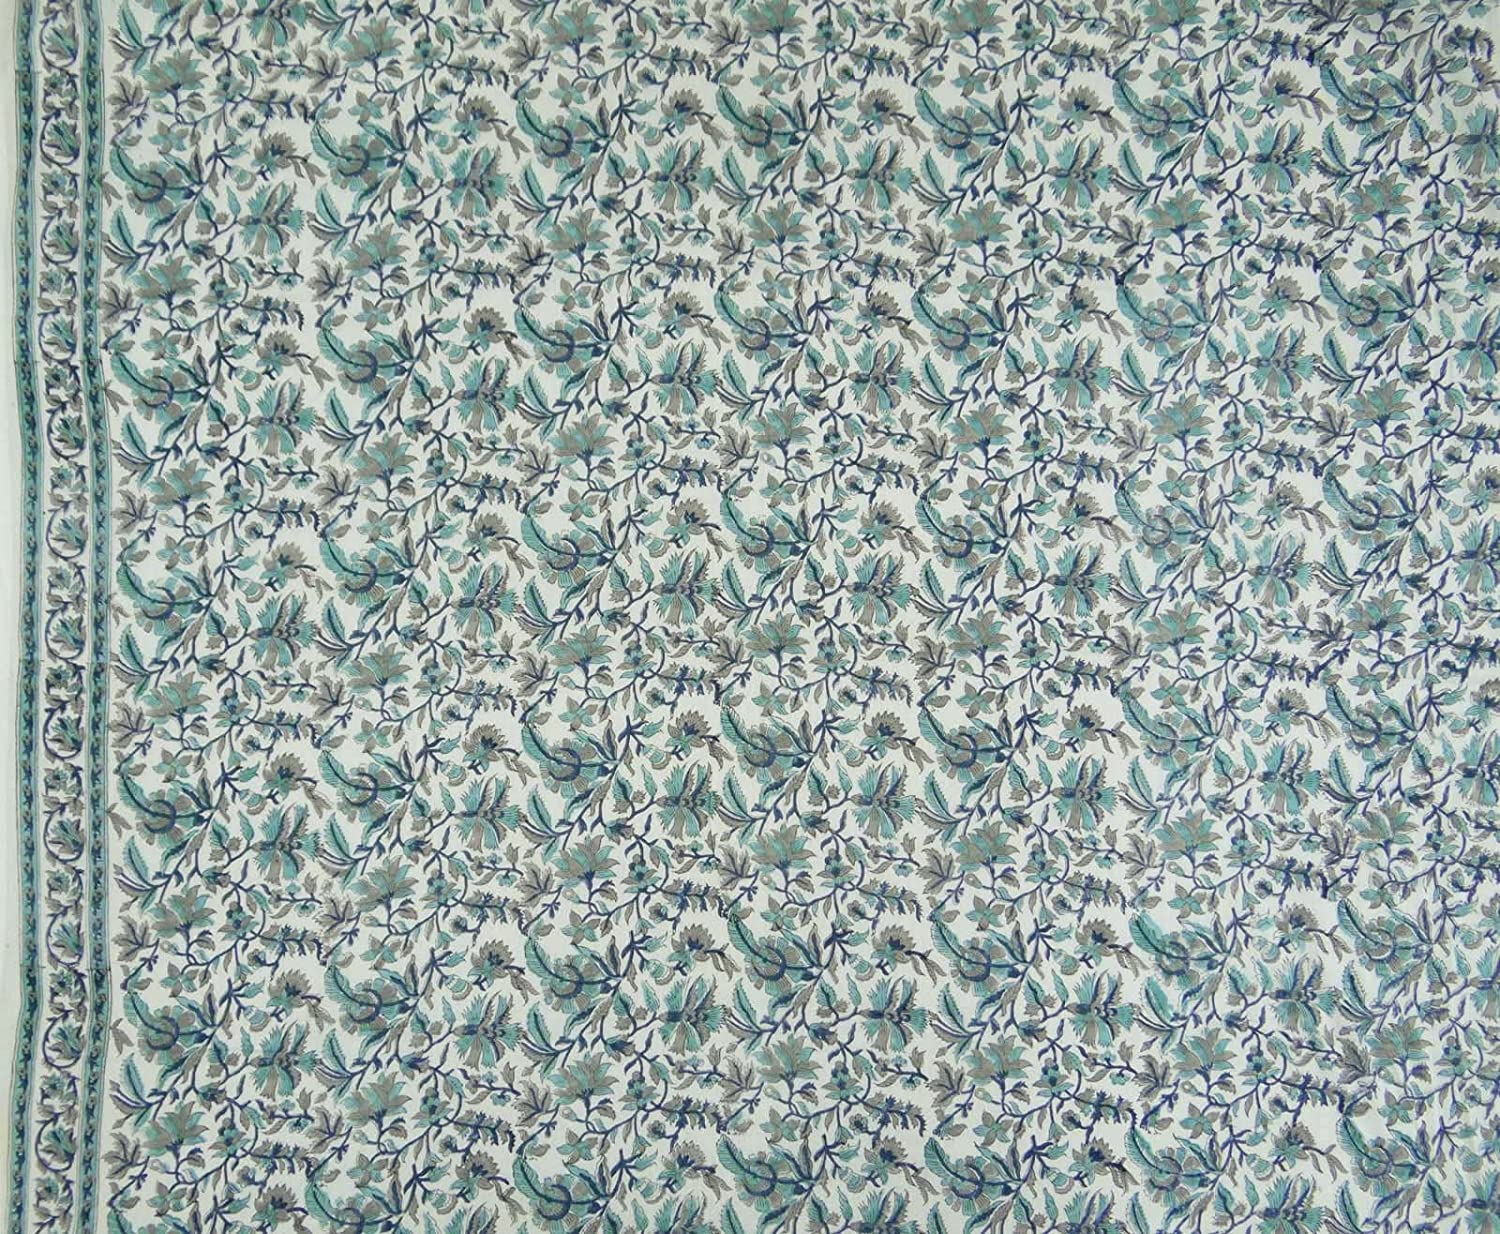 Fabric By the Meter 45in Width Cotton Weavers Soft Cotton Fabric Cotton Fabric Floral Block Print Fabric Indian Fabric